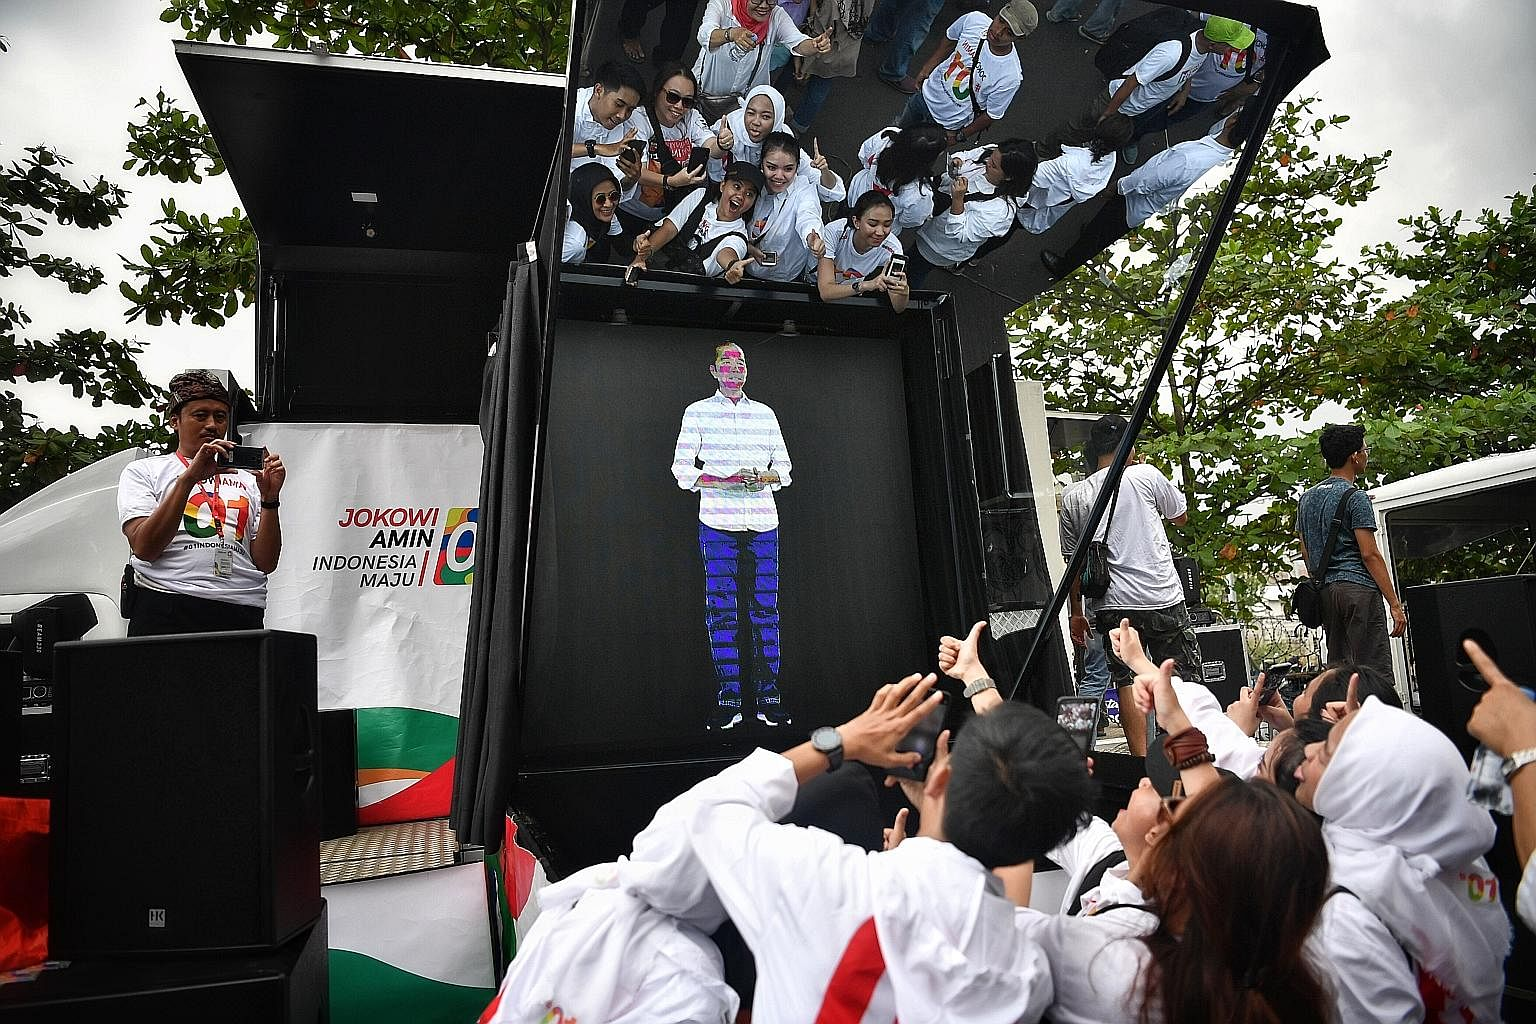 A holographic image of President Joko Widodo at a carnival in Banten province on Sunday. An analysis by consulting group Control Risks indicates that unless something unforeseen undermines his appeal with mainstream Muslim voters, he should be re-ele